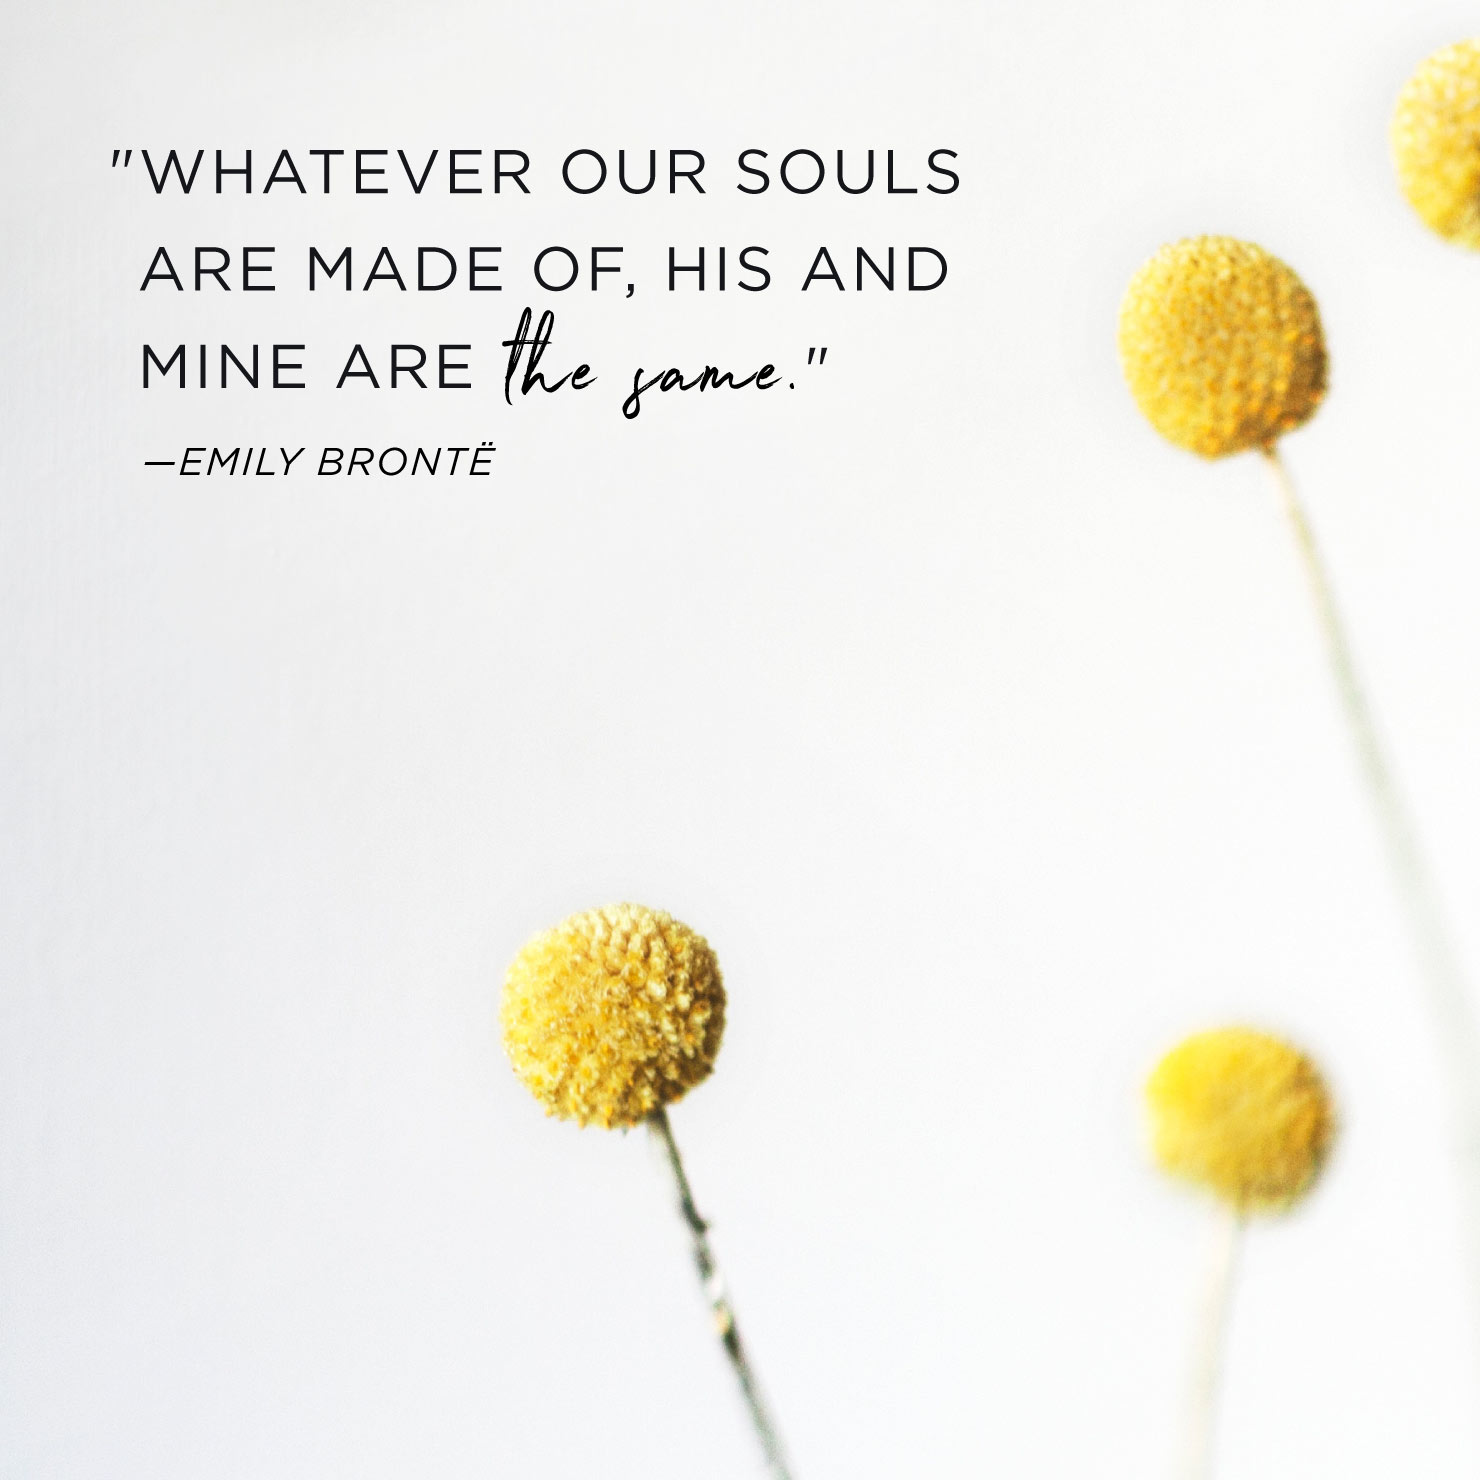 Quote above background image: Whatever our souls are made of, his and mine are the same. - Emily Bronte